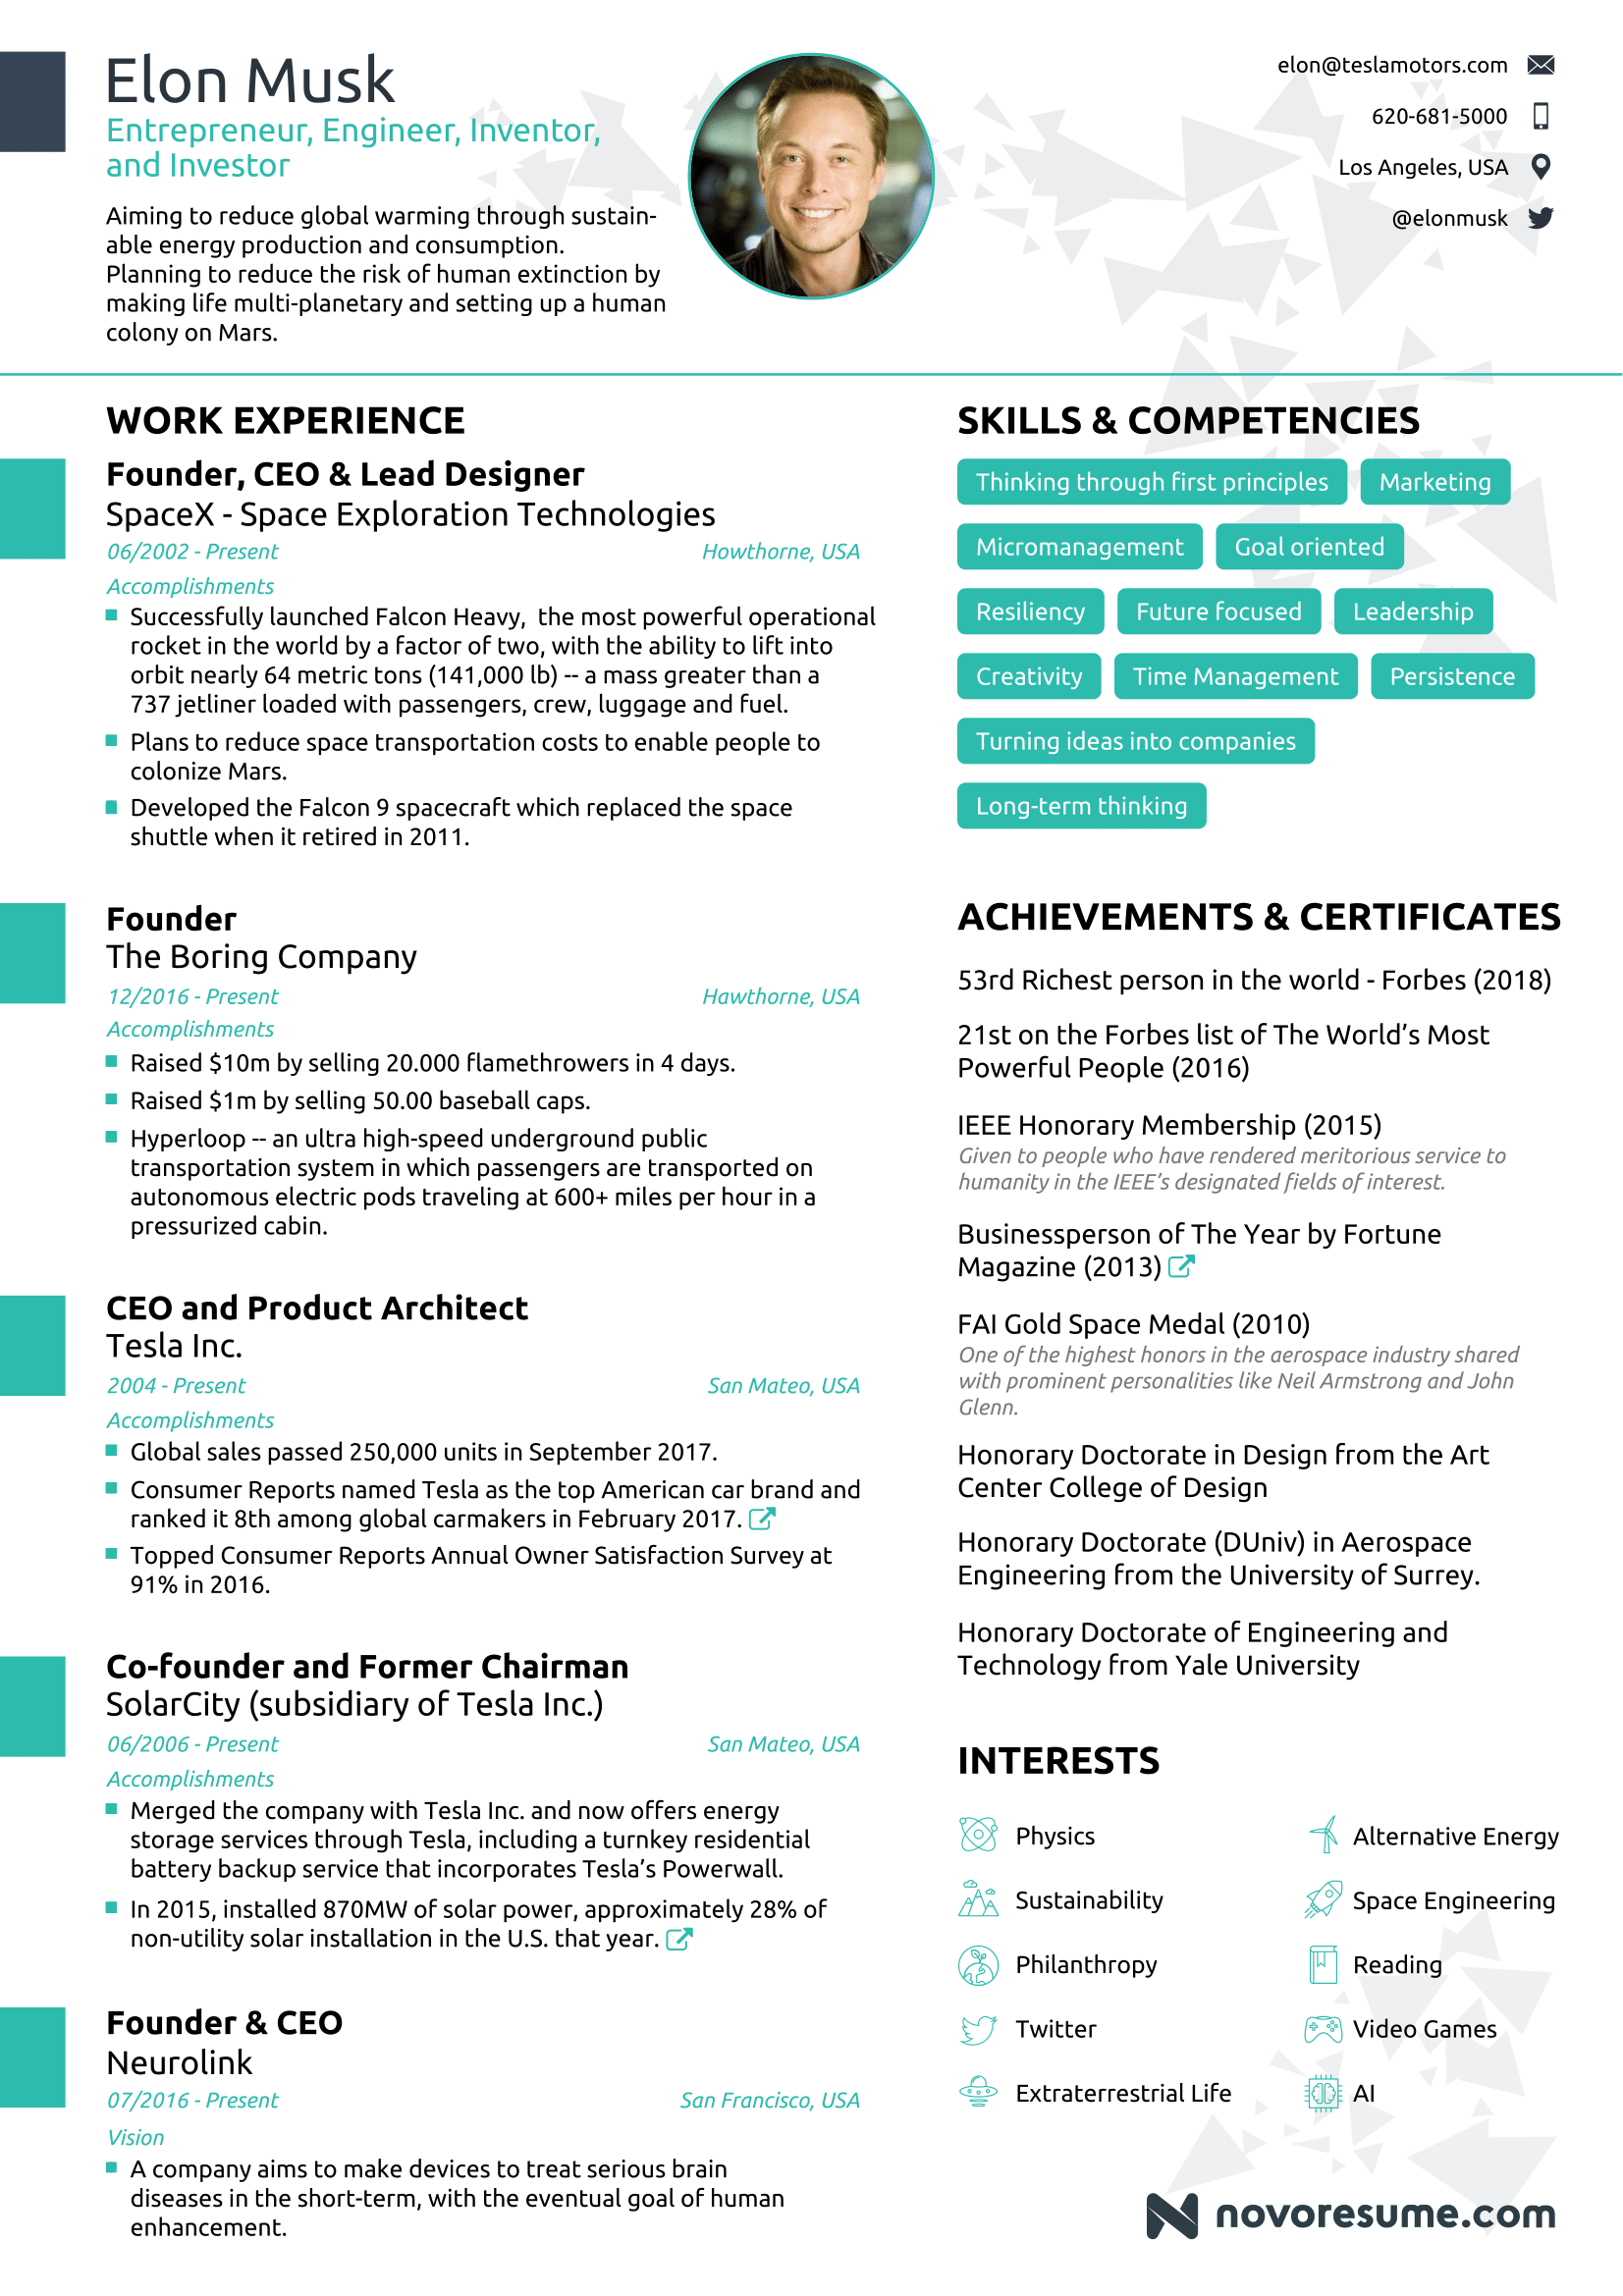 the résumé of elon musk by novorésumé